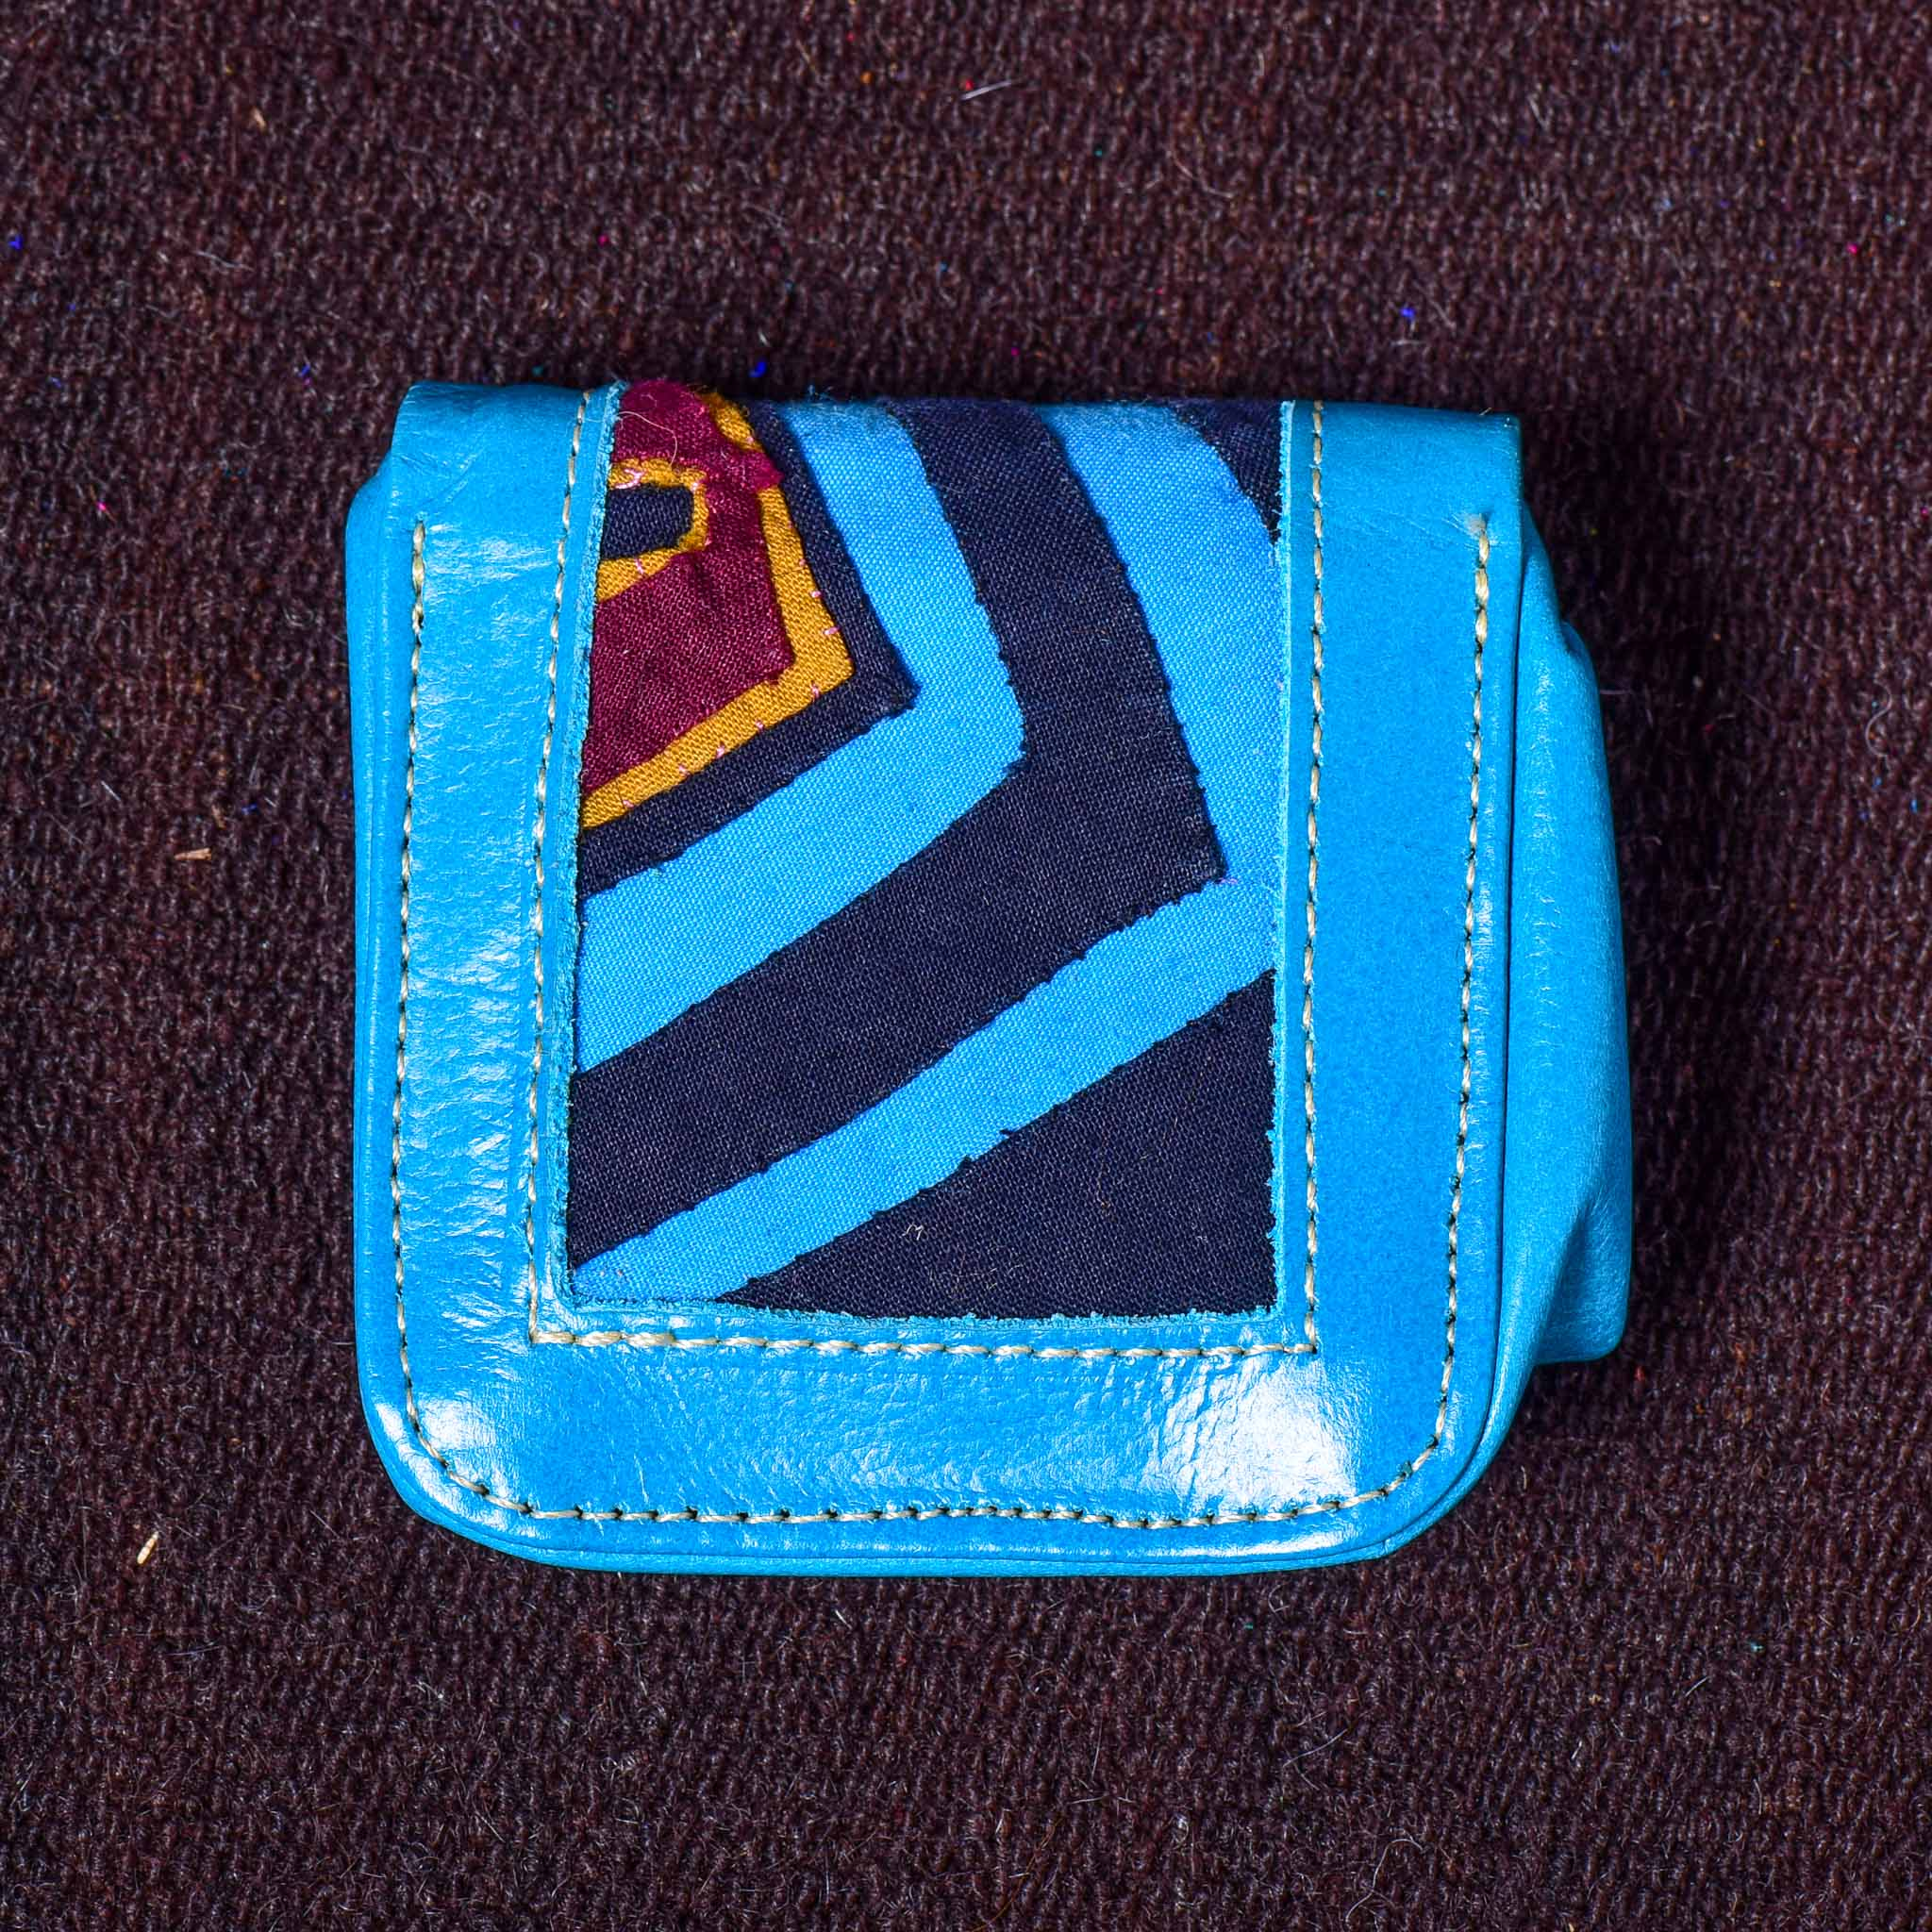 Cuadradito - Kuna Mola & Leather Purse blue